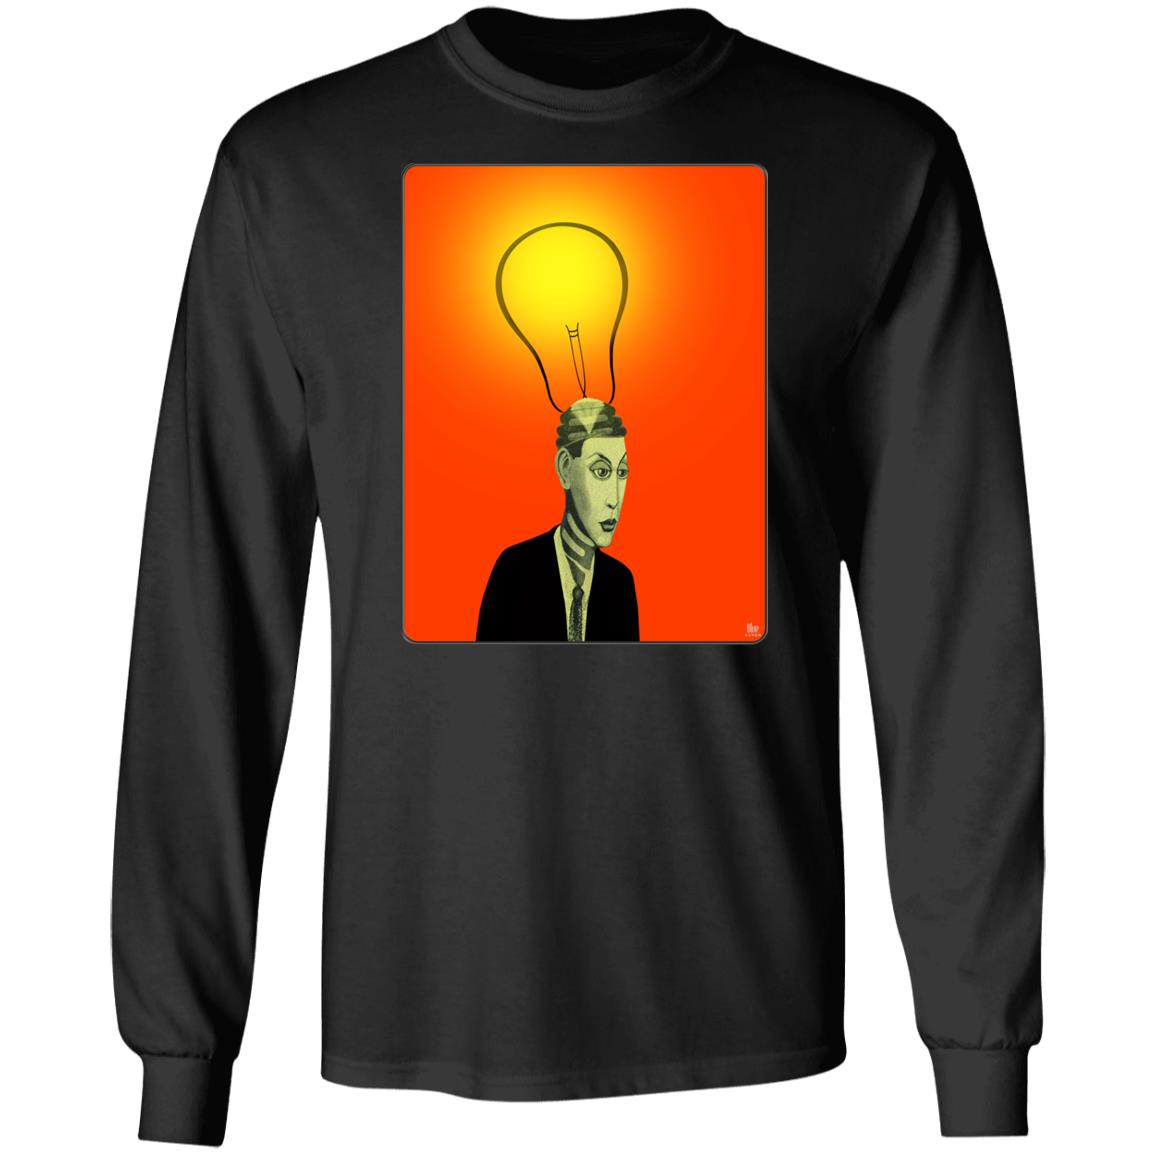 Bright Idea - Men's Long Sleeve T-Shirt